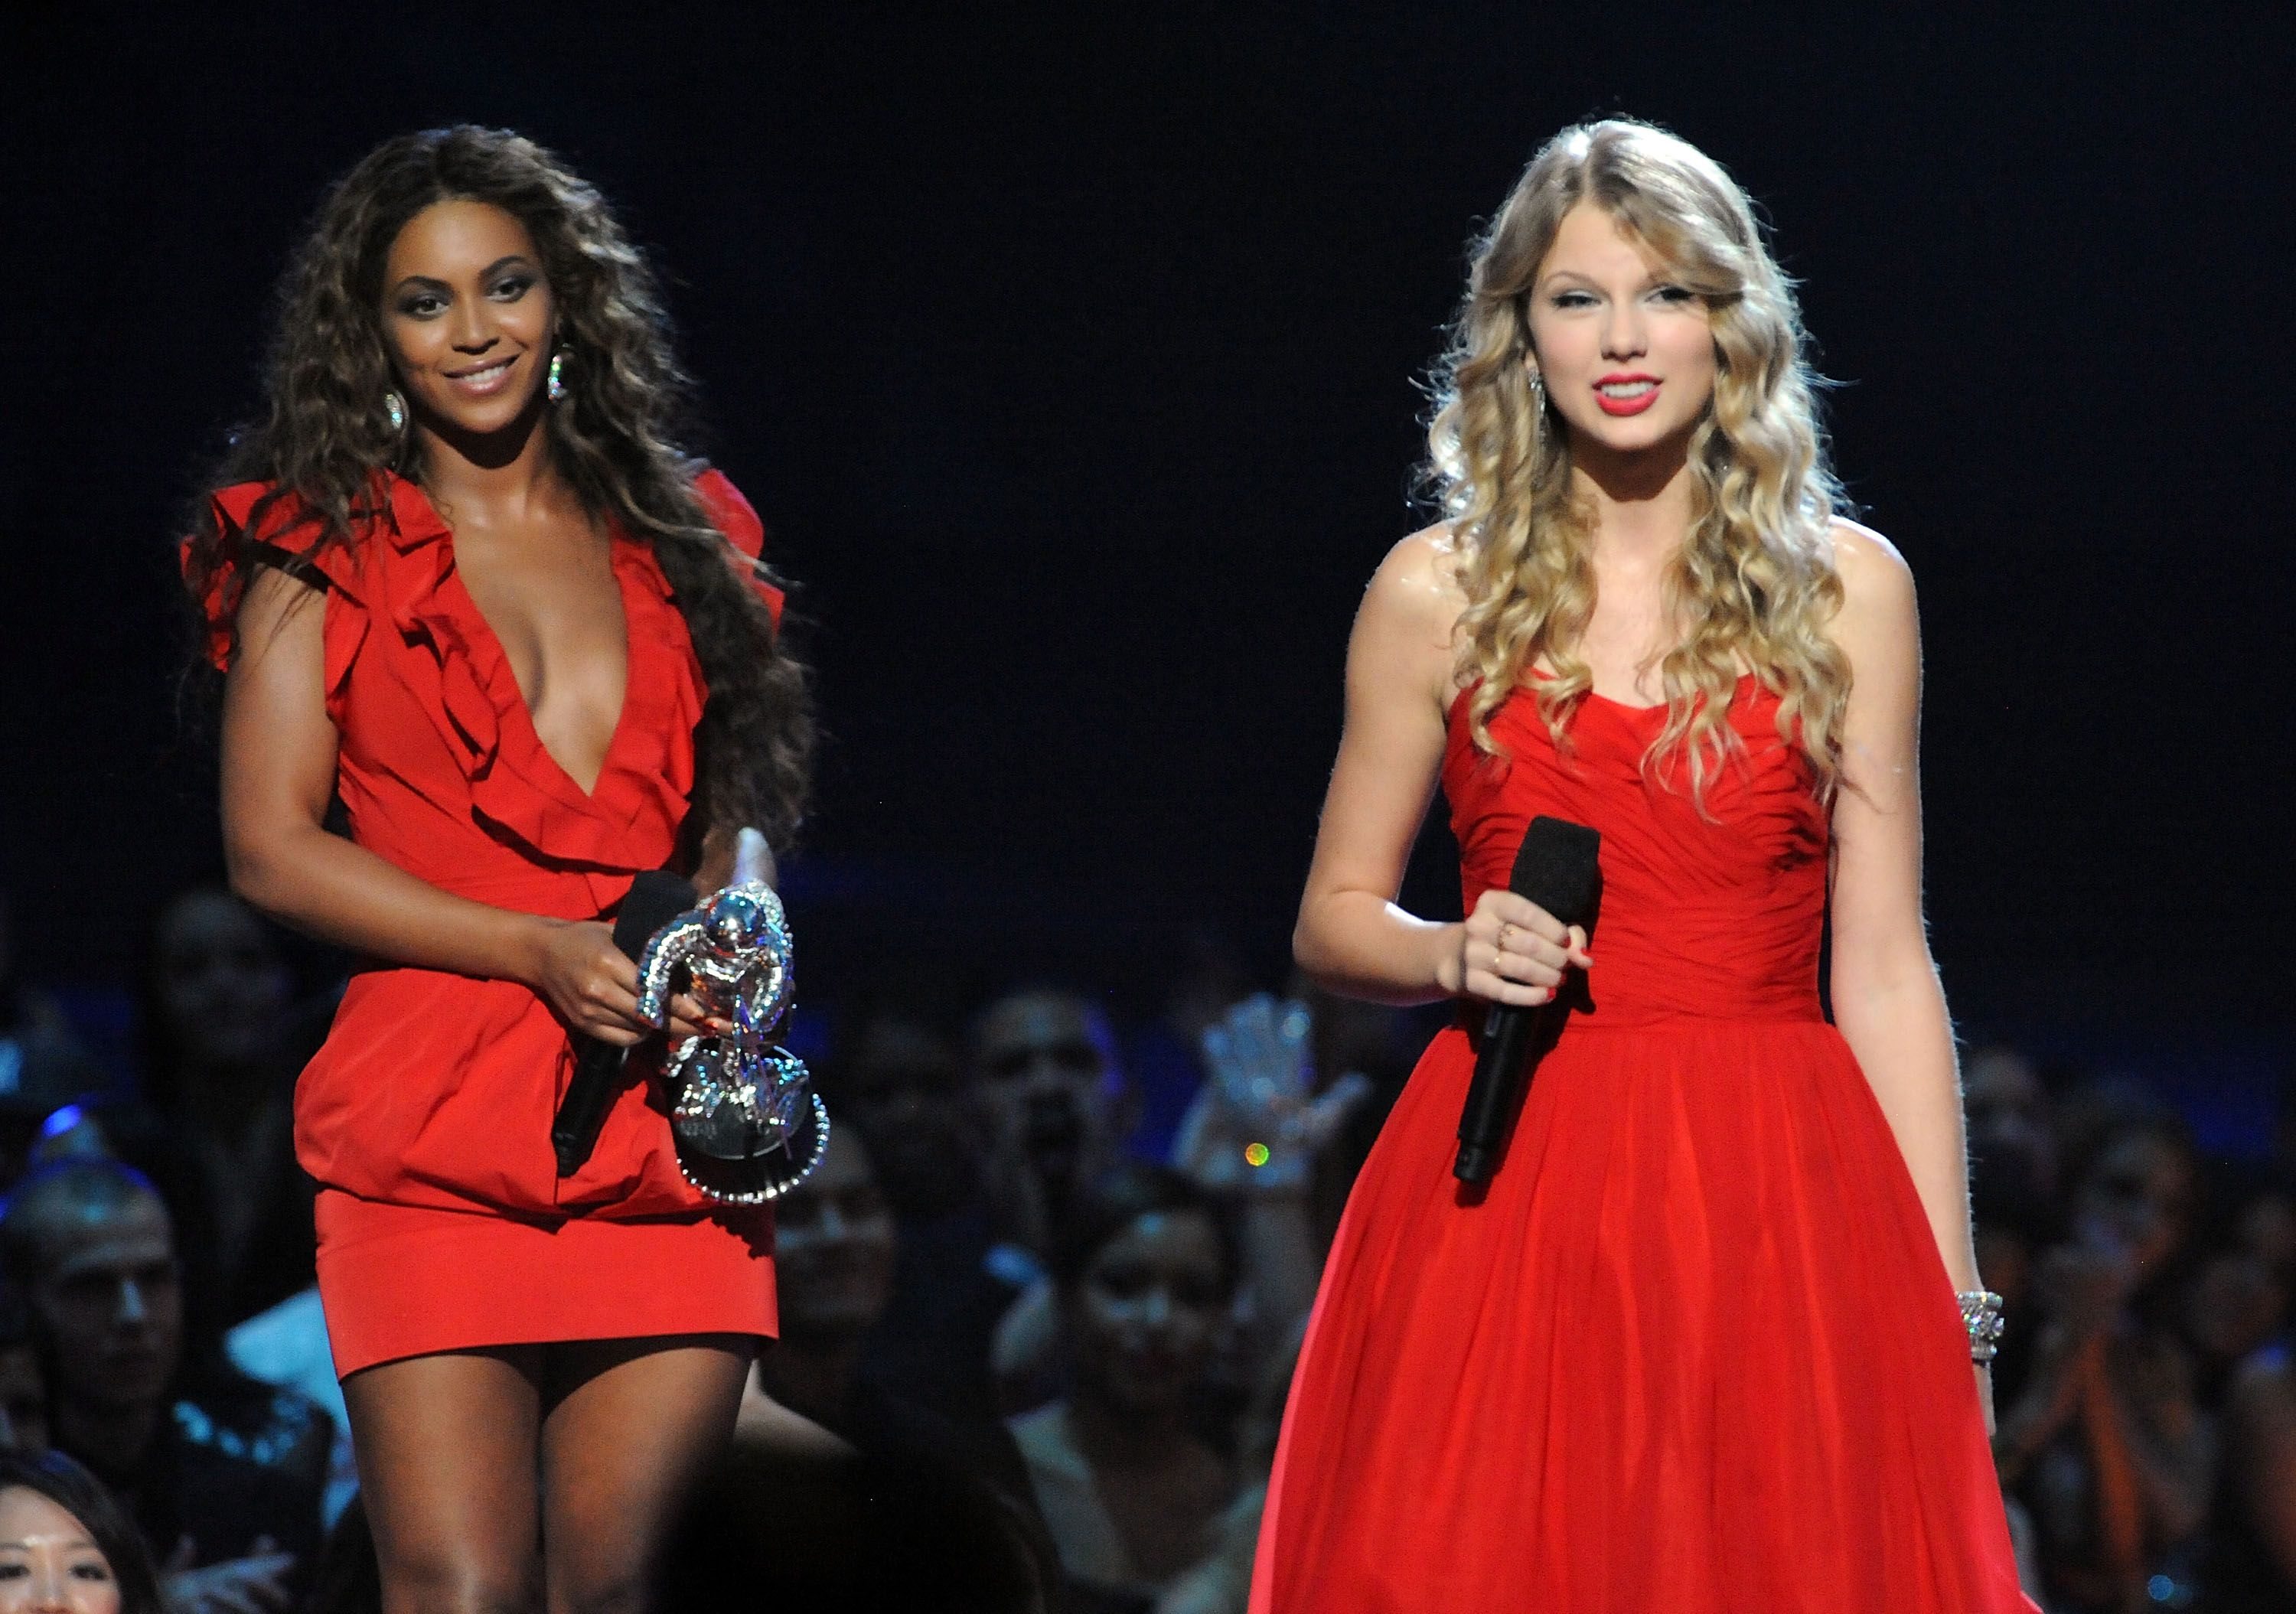 Beyoncé Was Crying Backstage After Kanye West Interrupted Taylor Swift On Stage At The VMAs